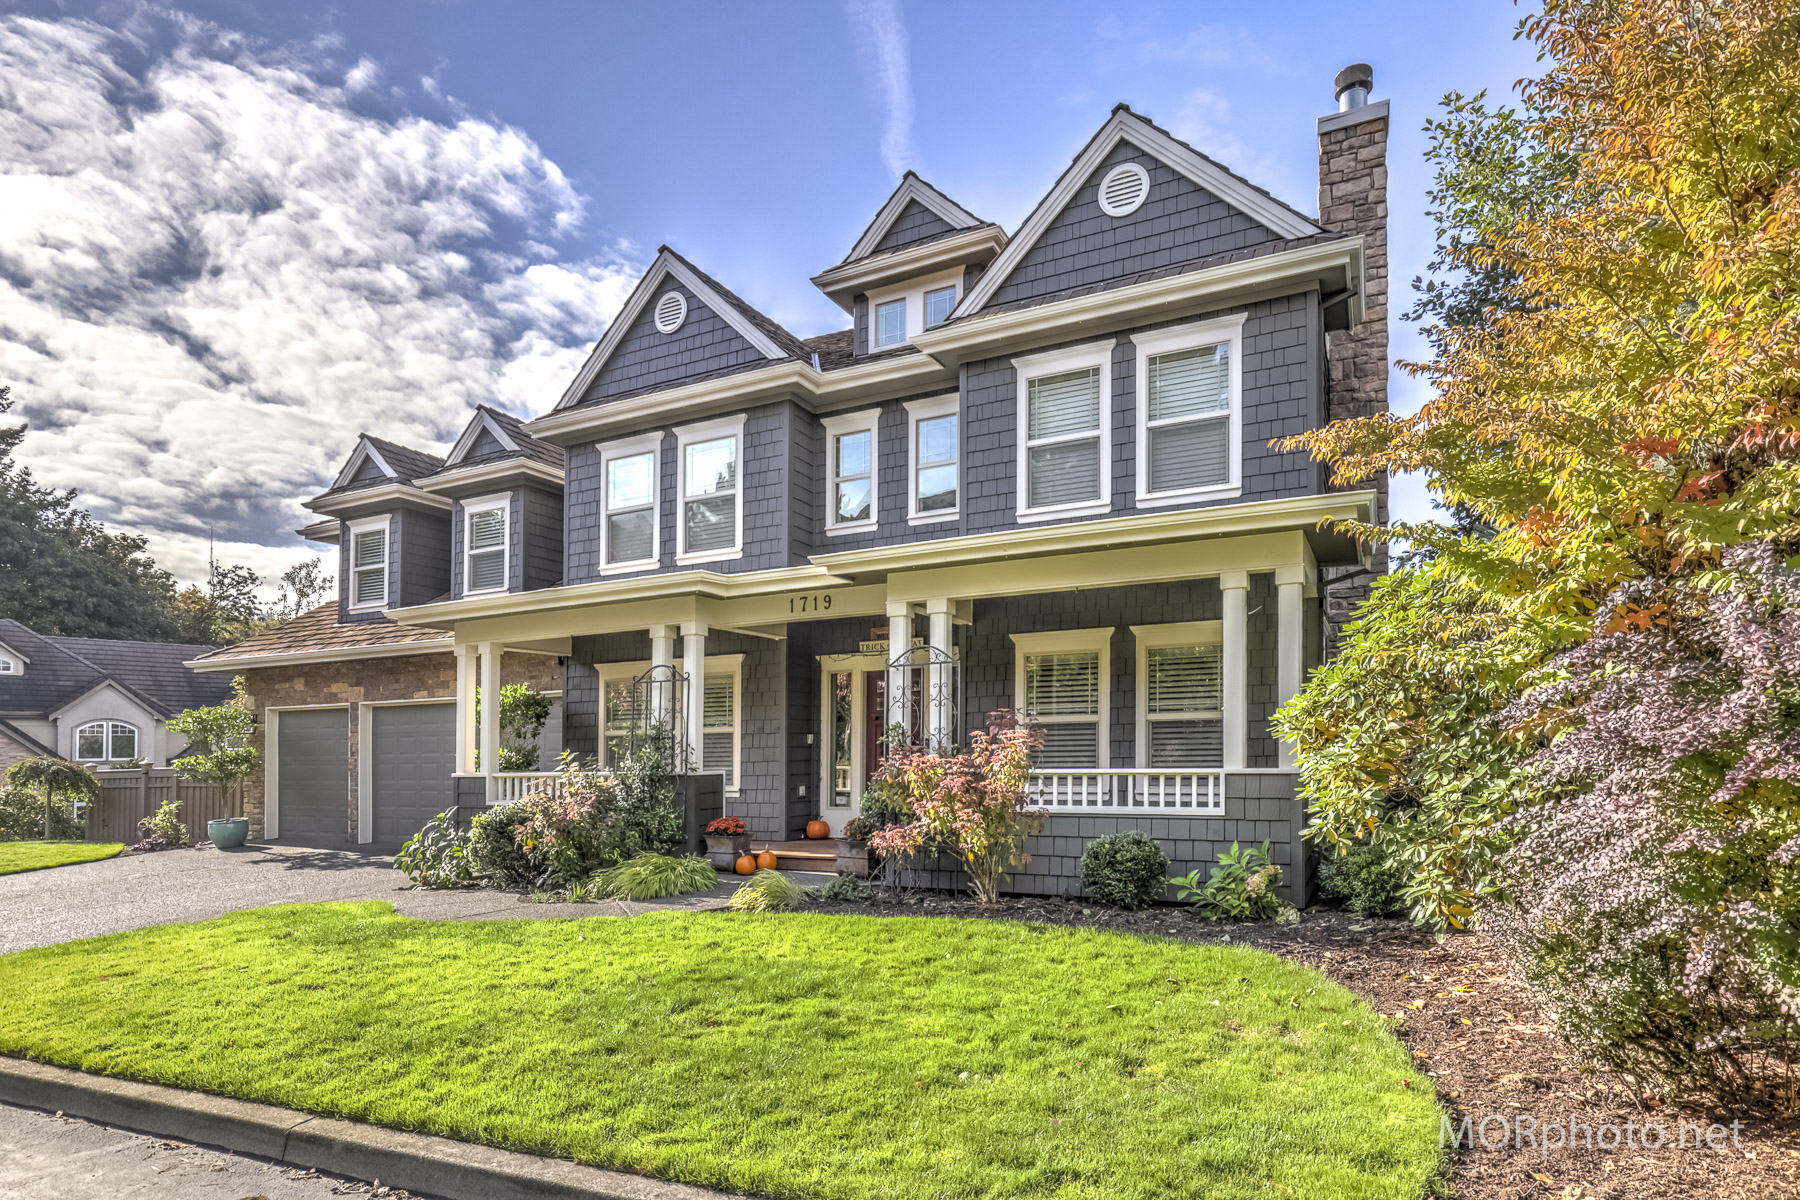 Exterior Residential Painting Projects